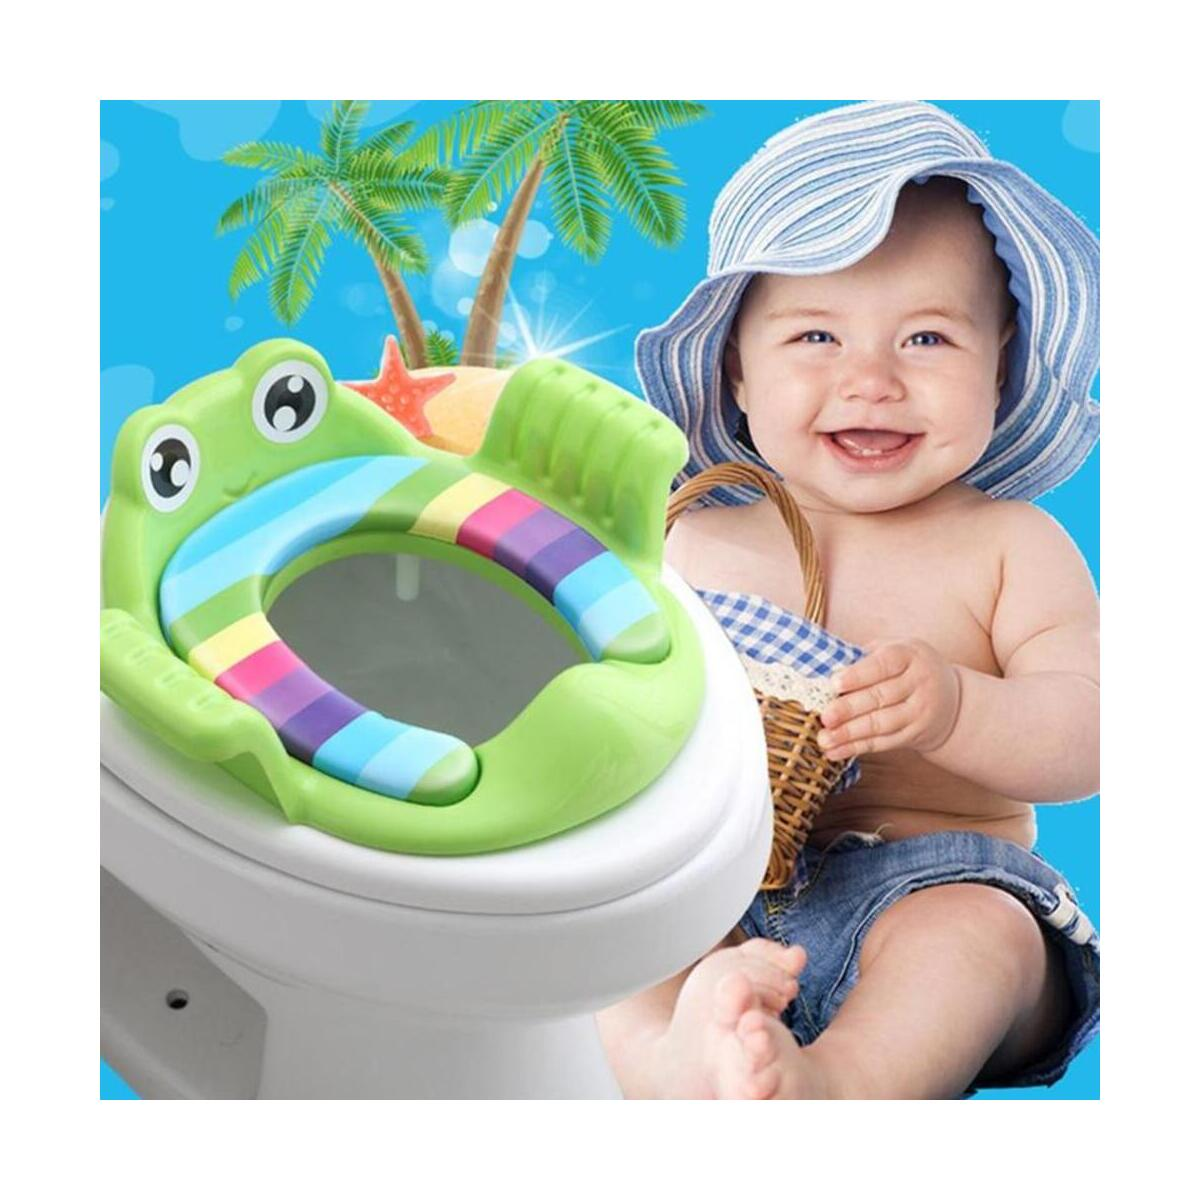 Frogy Baby Potty Training Seat Children's Potty With Adjustable Ladder Infant Baby Toilet Seat Toilet Training Folding Seat